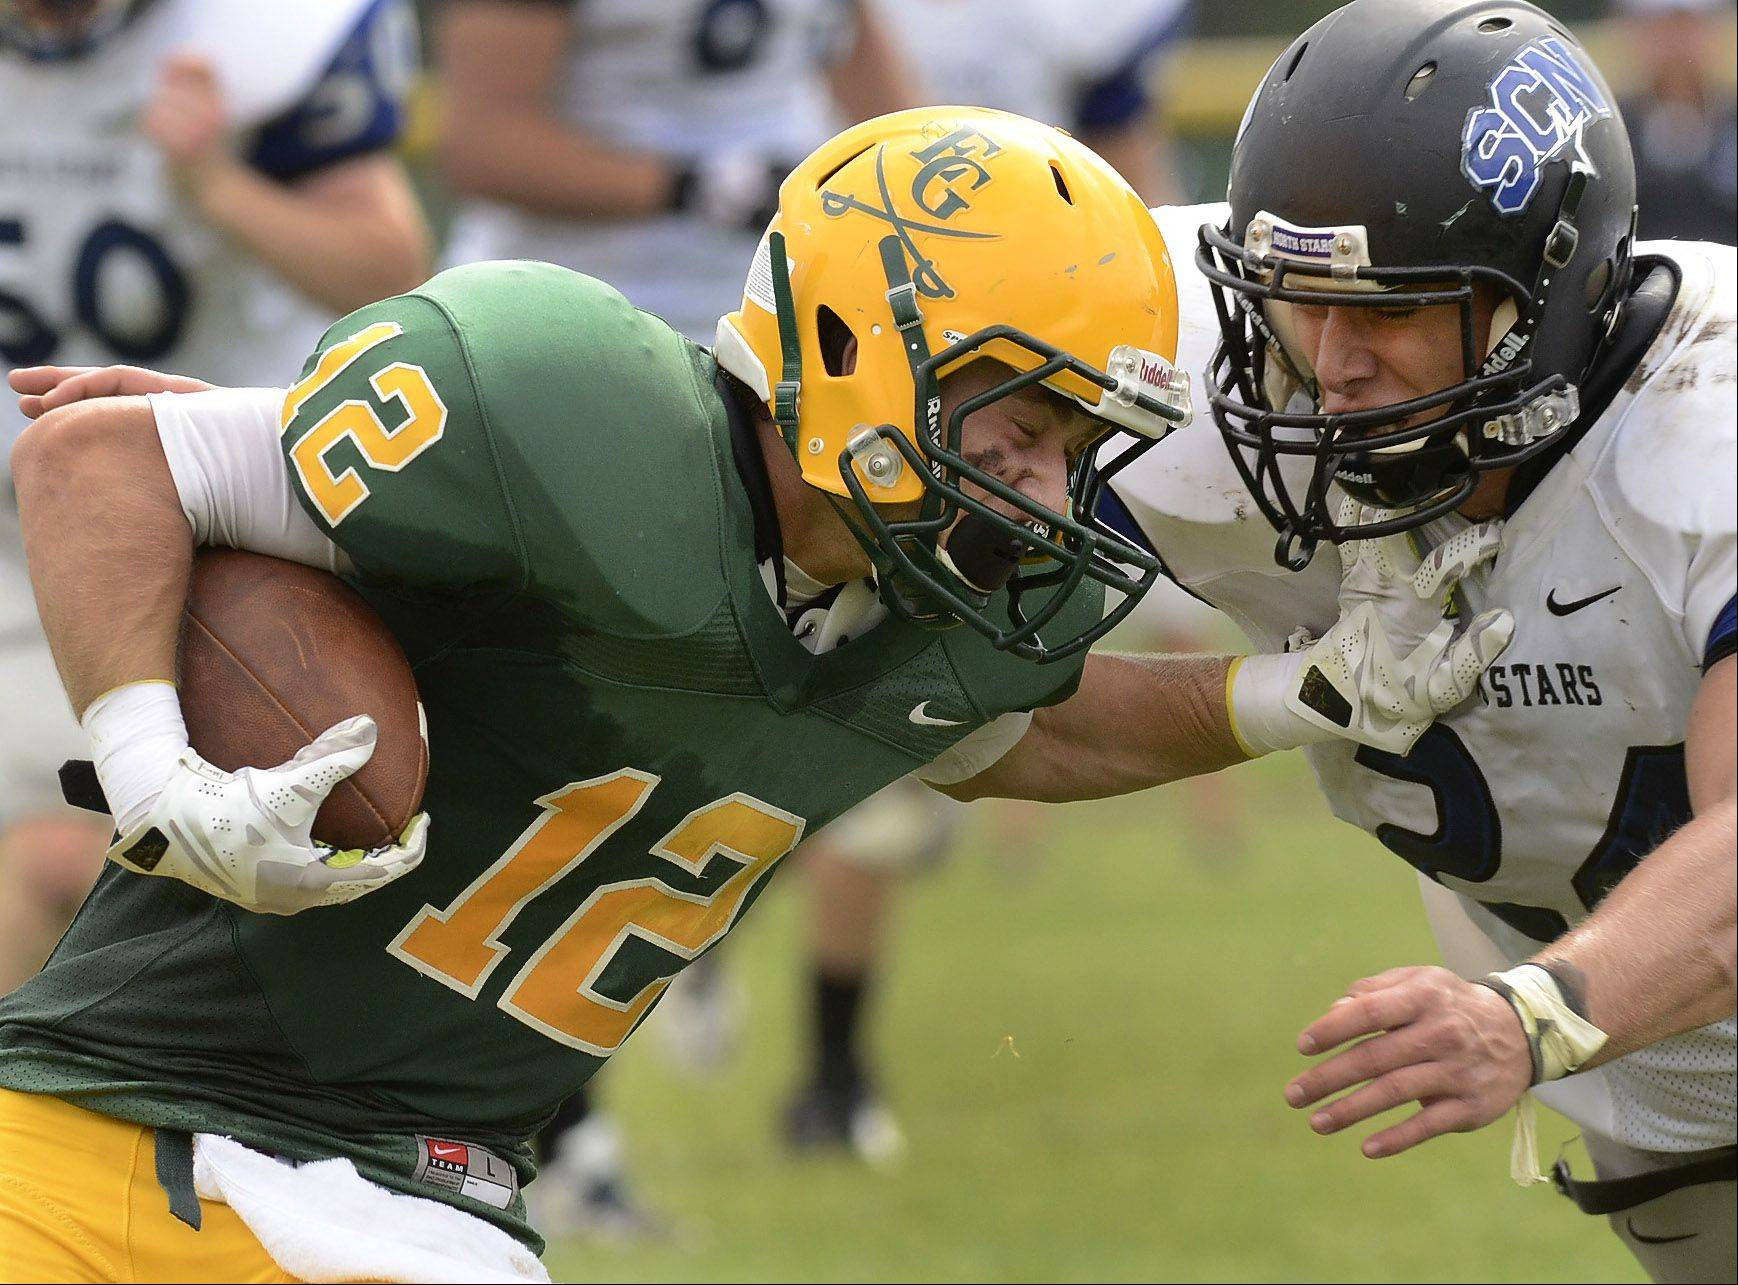 Elk Grove's Matthew Wary hits St. Charles North's Evan Kurtz during Saturday's football game.